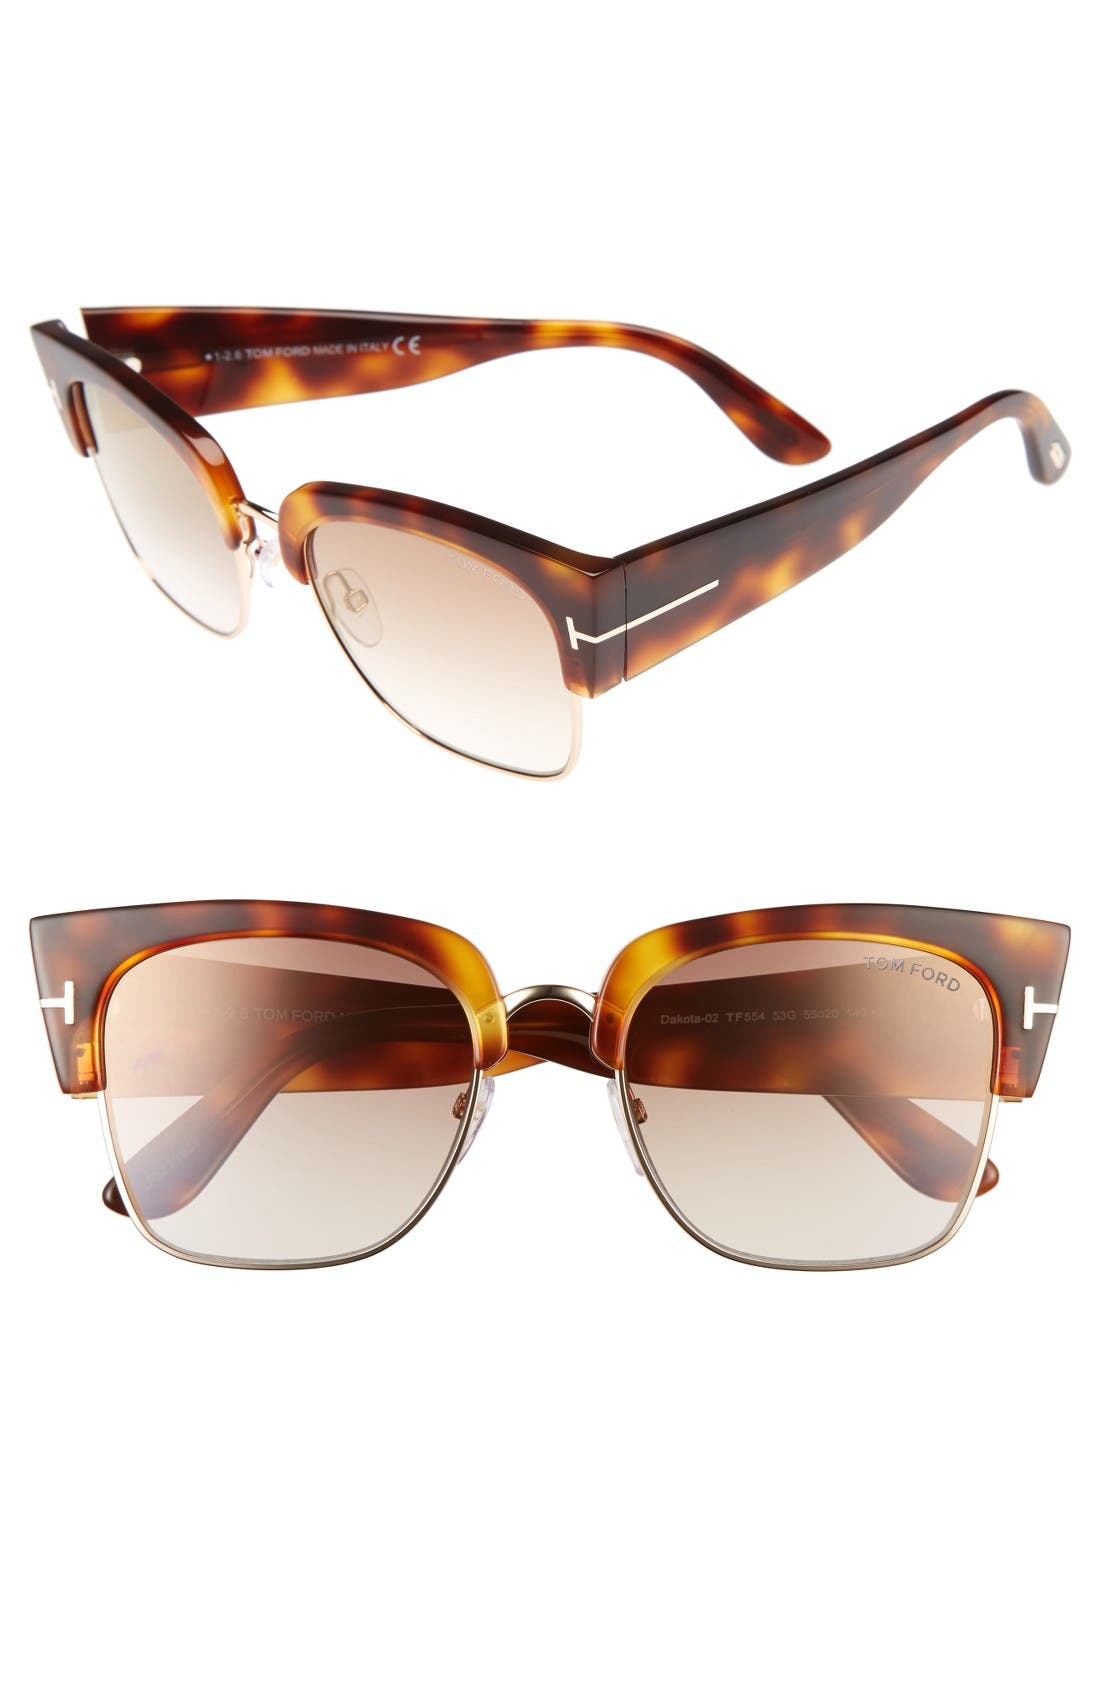 Dakota 55mm Retro Sunglasses,                             Main thumbnail 1, color,                             Blonde Havana/ Brown Mirror